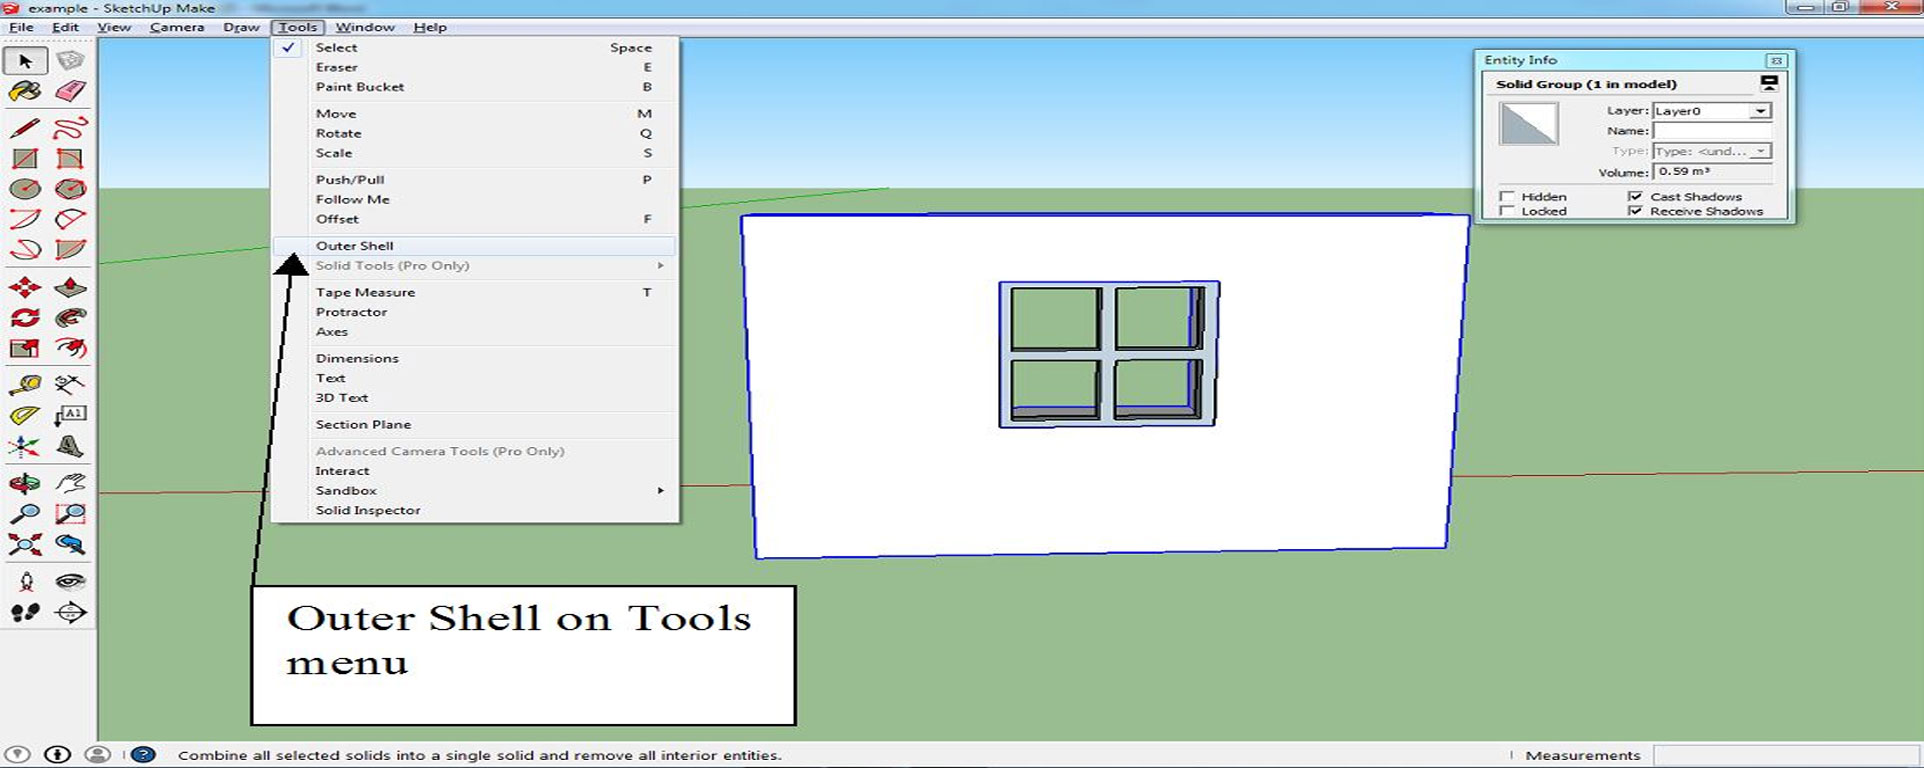 Making Structures Solid'- A Sketchup Tutorial by Paul